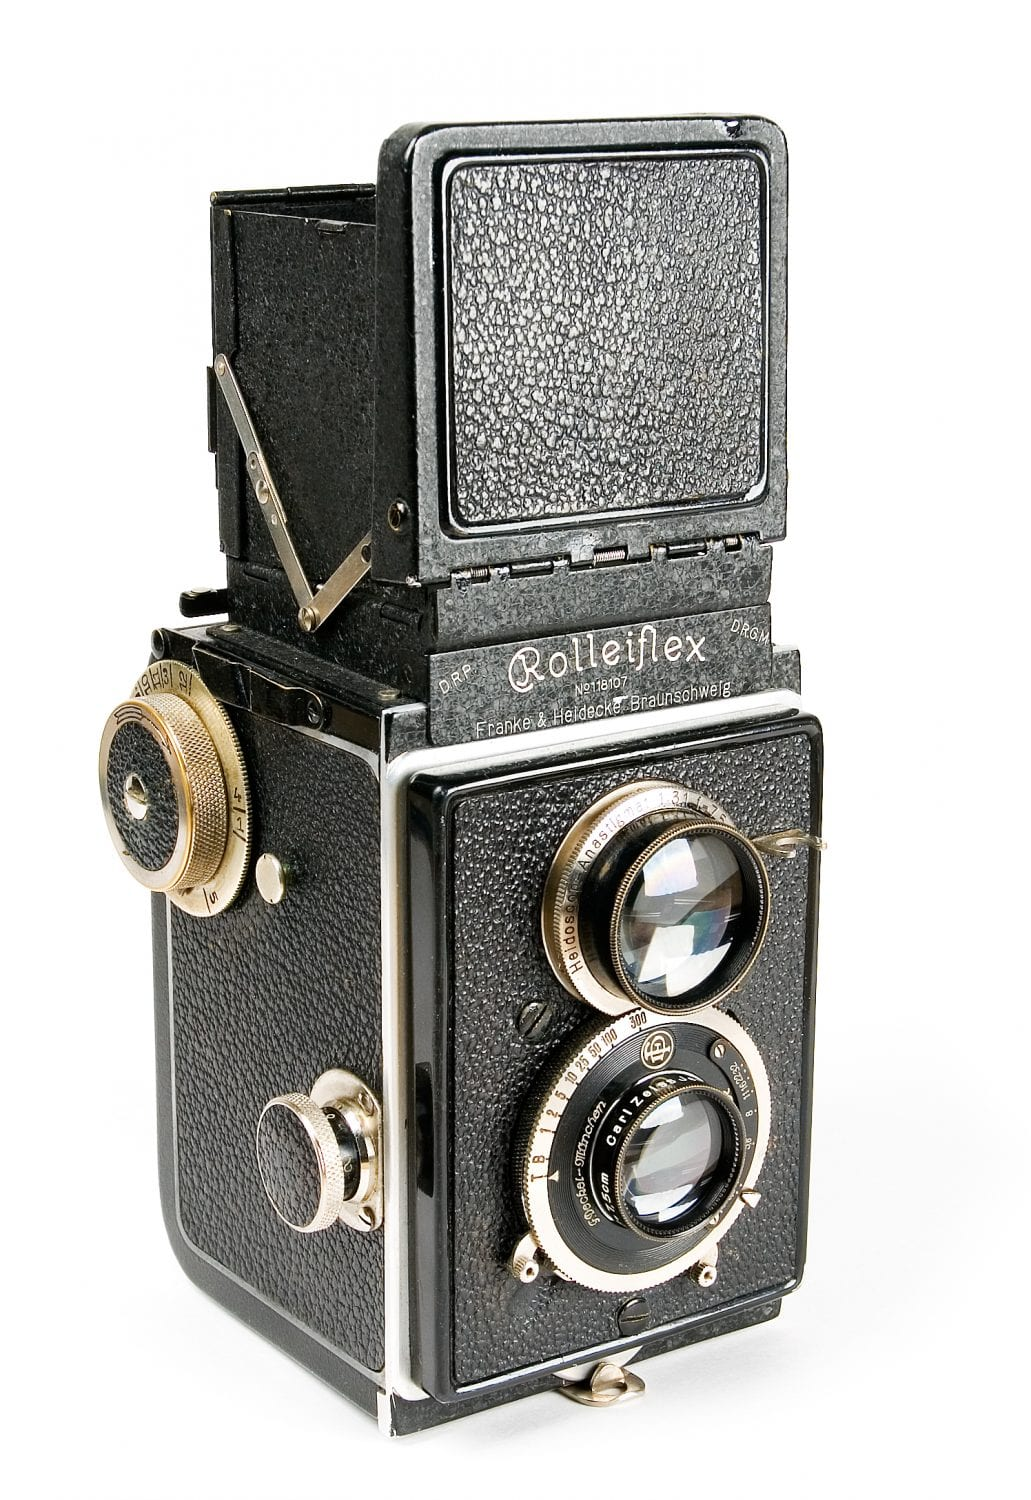 A Rolleiflex Original camera with Carl Zeiss Jena Tessar F/3.8, 7.5cm lens. Photo © Eugene Ilchenko.